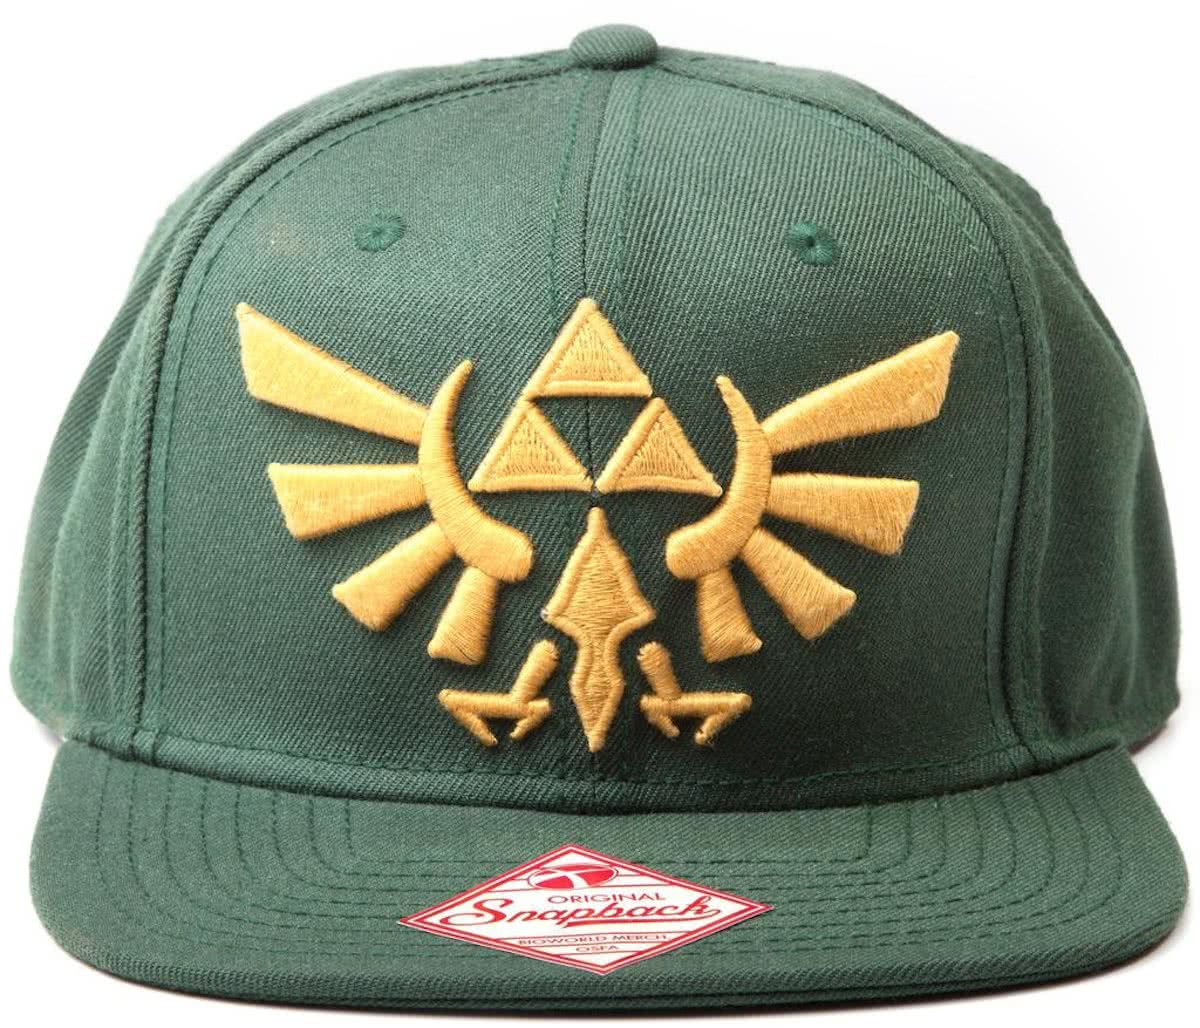 Nintendo - Zelda Embroided Gold Logo Snapback (Green)